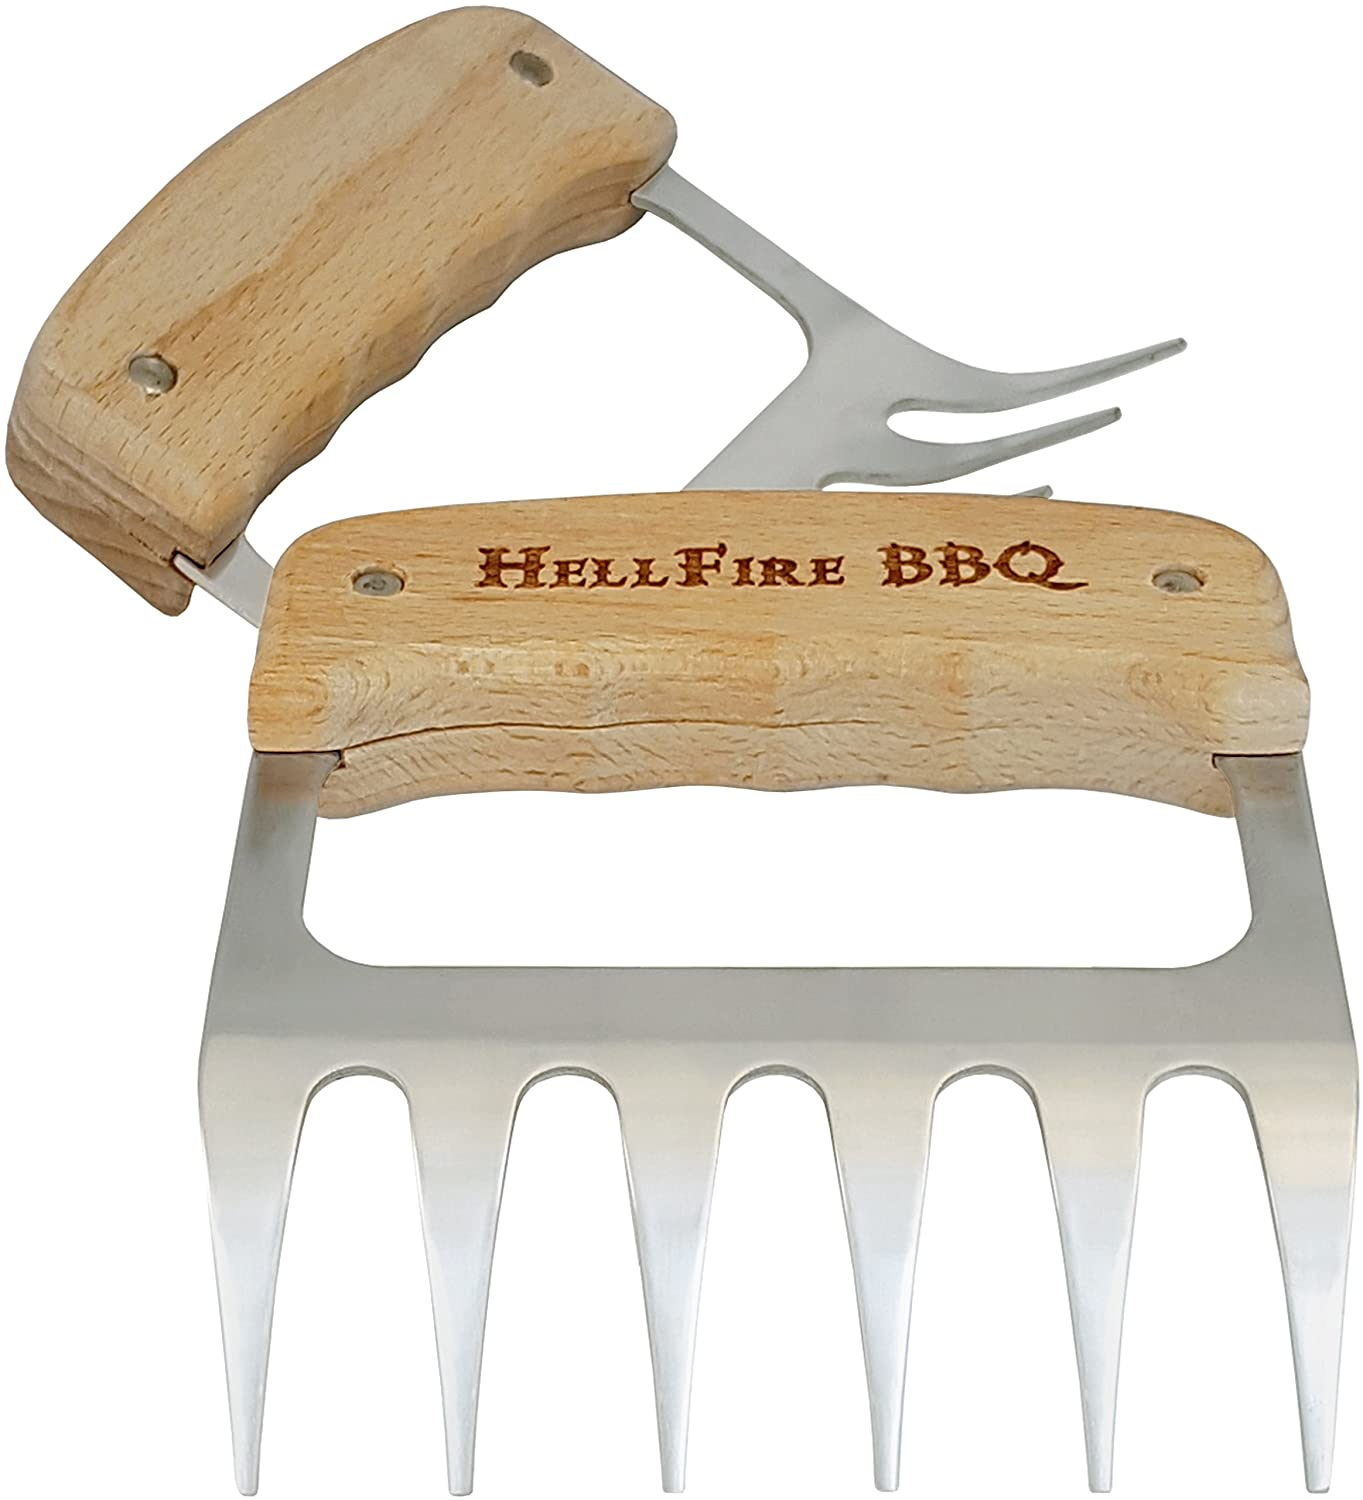 HellFire BBQ Meat Claws - Our Pulled Pork Shredders Feel Like Bear Paws, or Wolverine's Claws Compared to Boring Meat Handlers or Forks - Heat Resistant Stainless Steel Metal - Wooden Handles CLAWSTL638